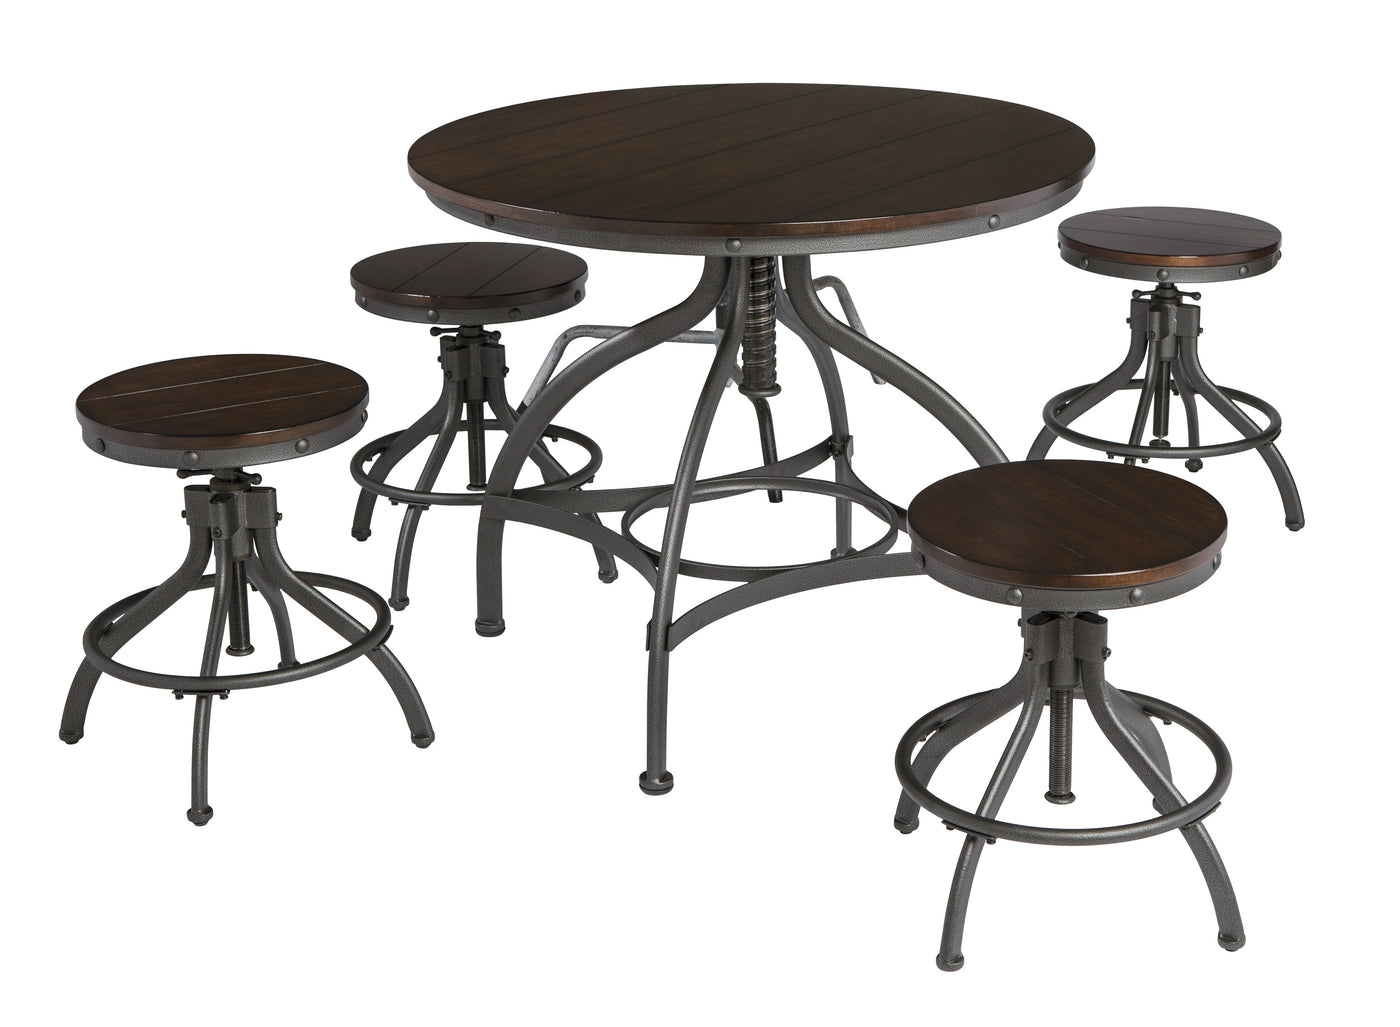 Excellent Odium Counter Height Table Set Andrewgaddart Wooden Chair Designs For Living Room Andrewgaddartcom